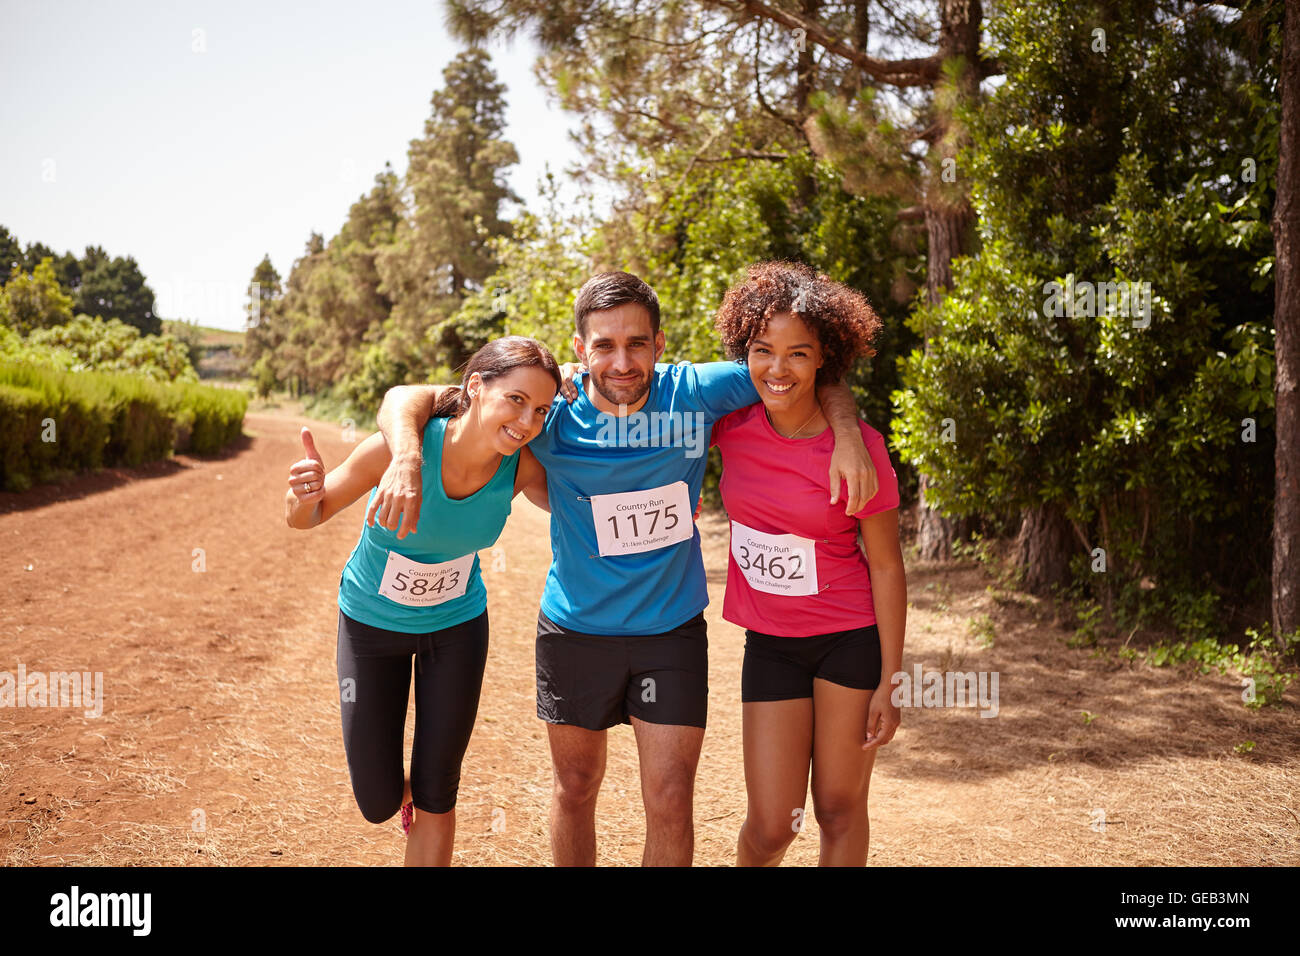 Three runners celebrating the end of a cross country marathon with trees behind them wearing casual running clothes - Stock Image